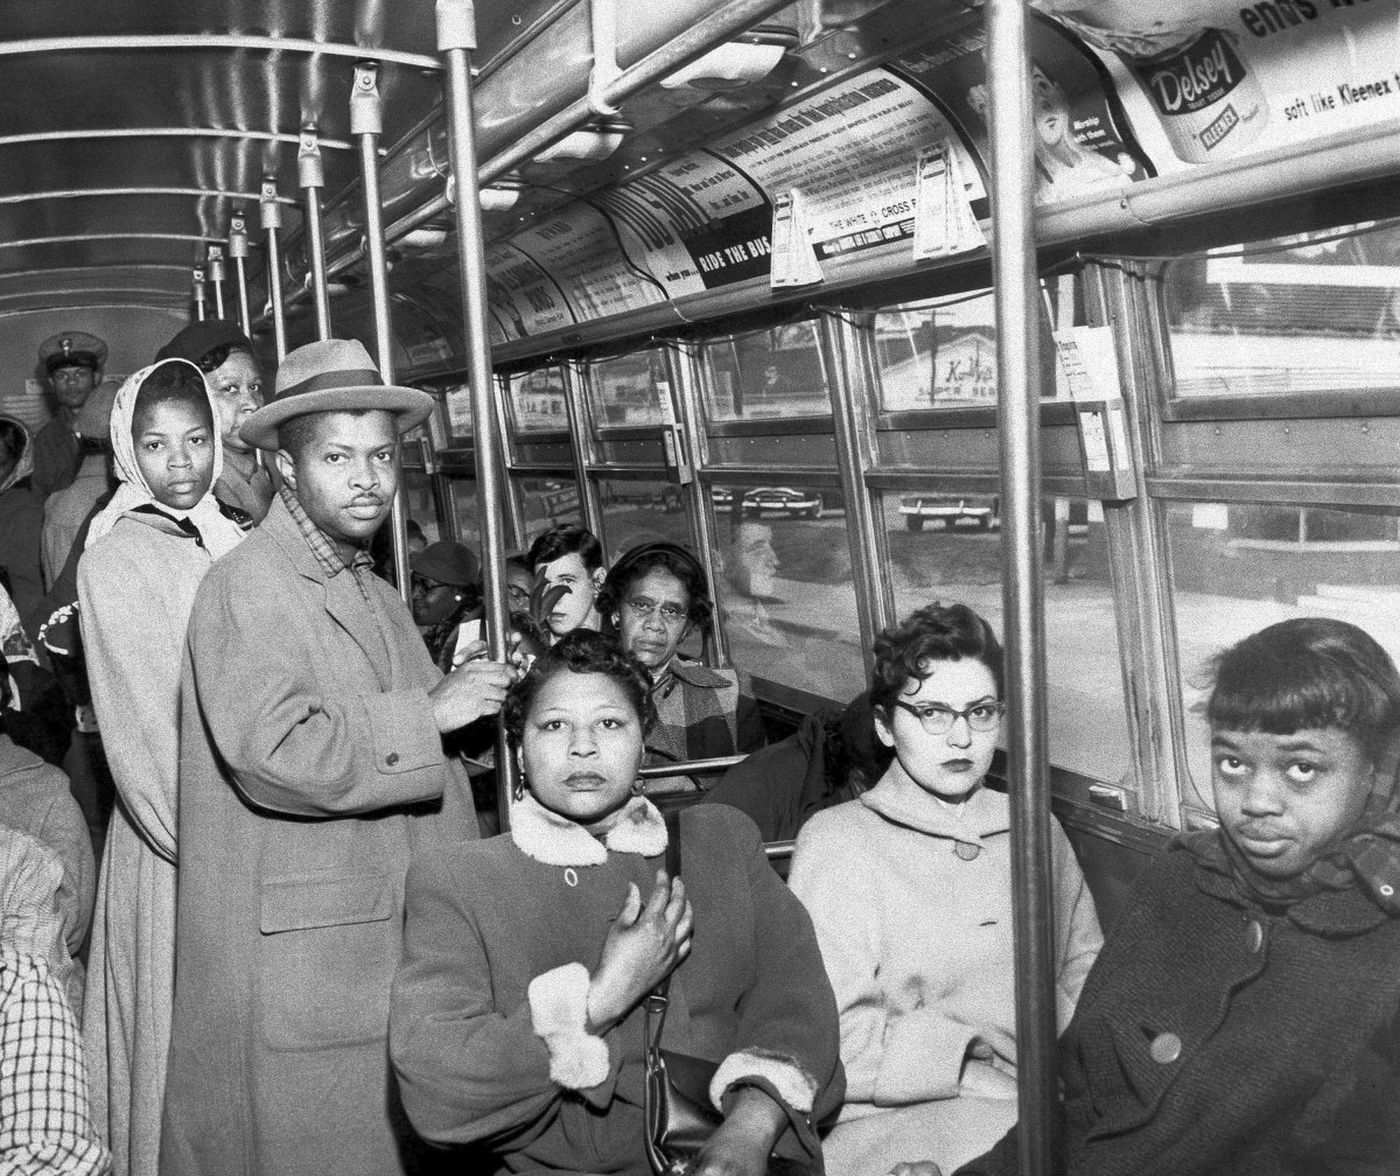 Segregation On Buses Ruled Unconstitutional By Supreme Court In